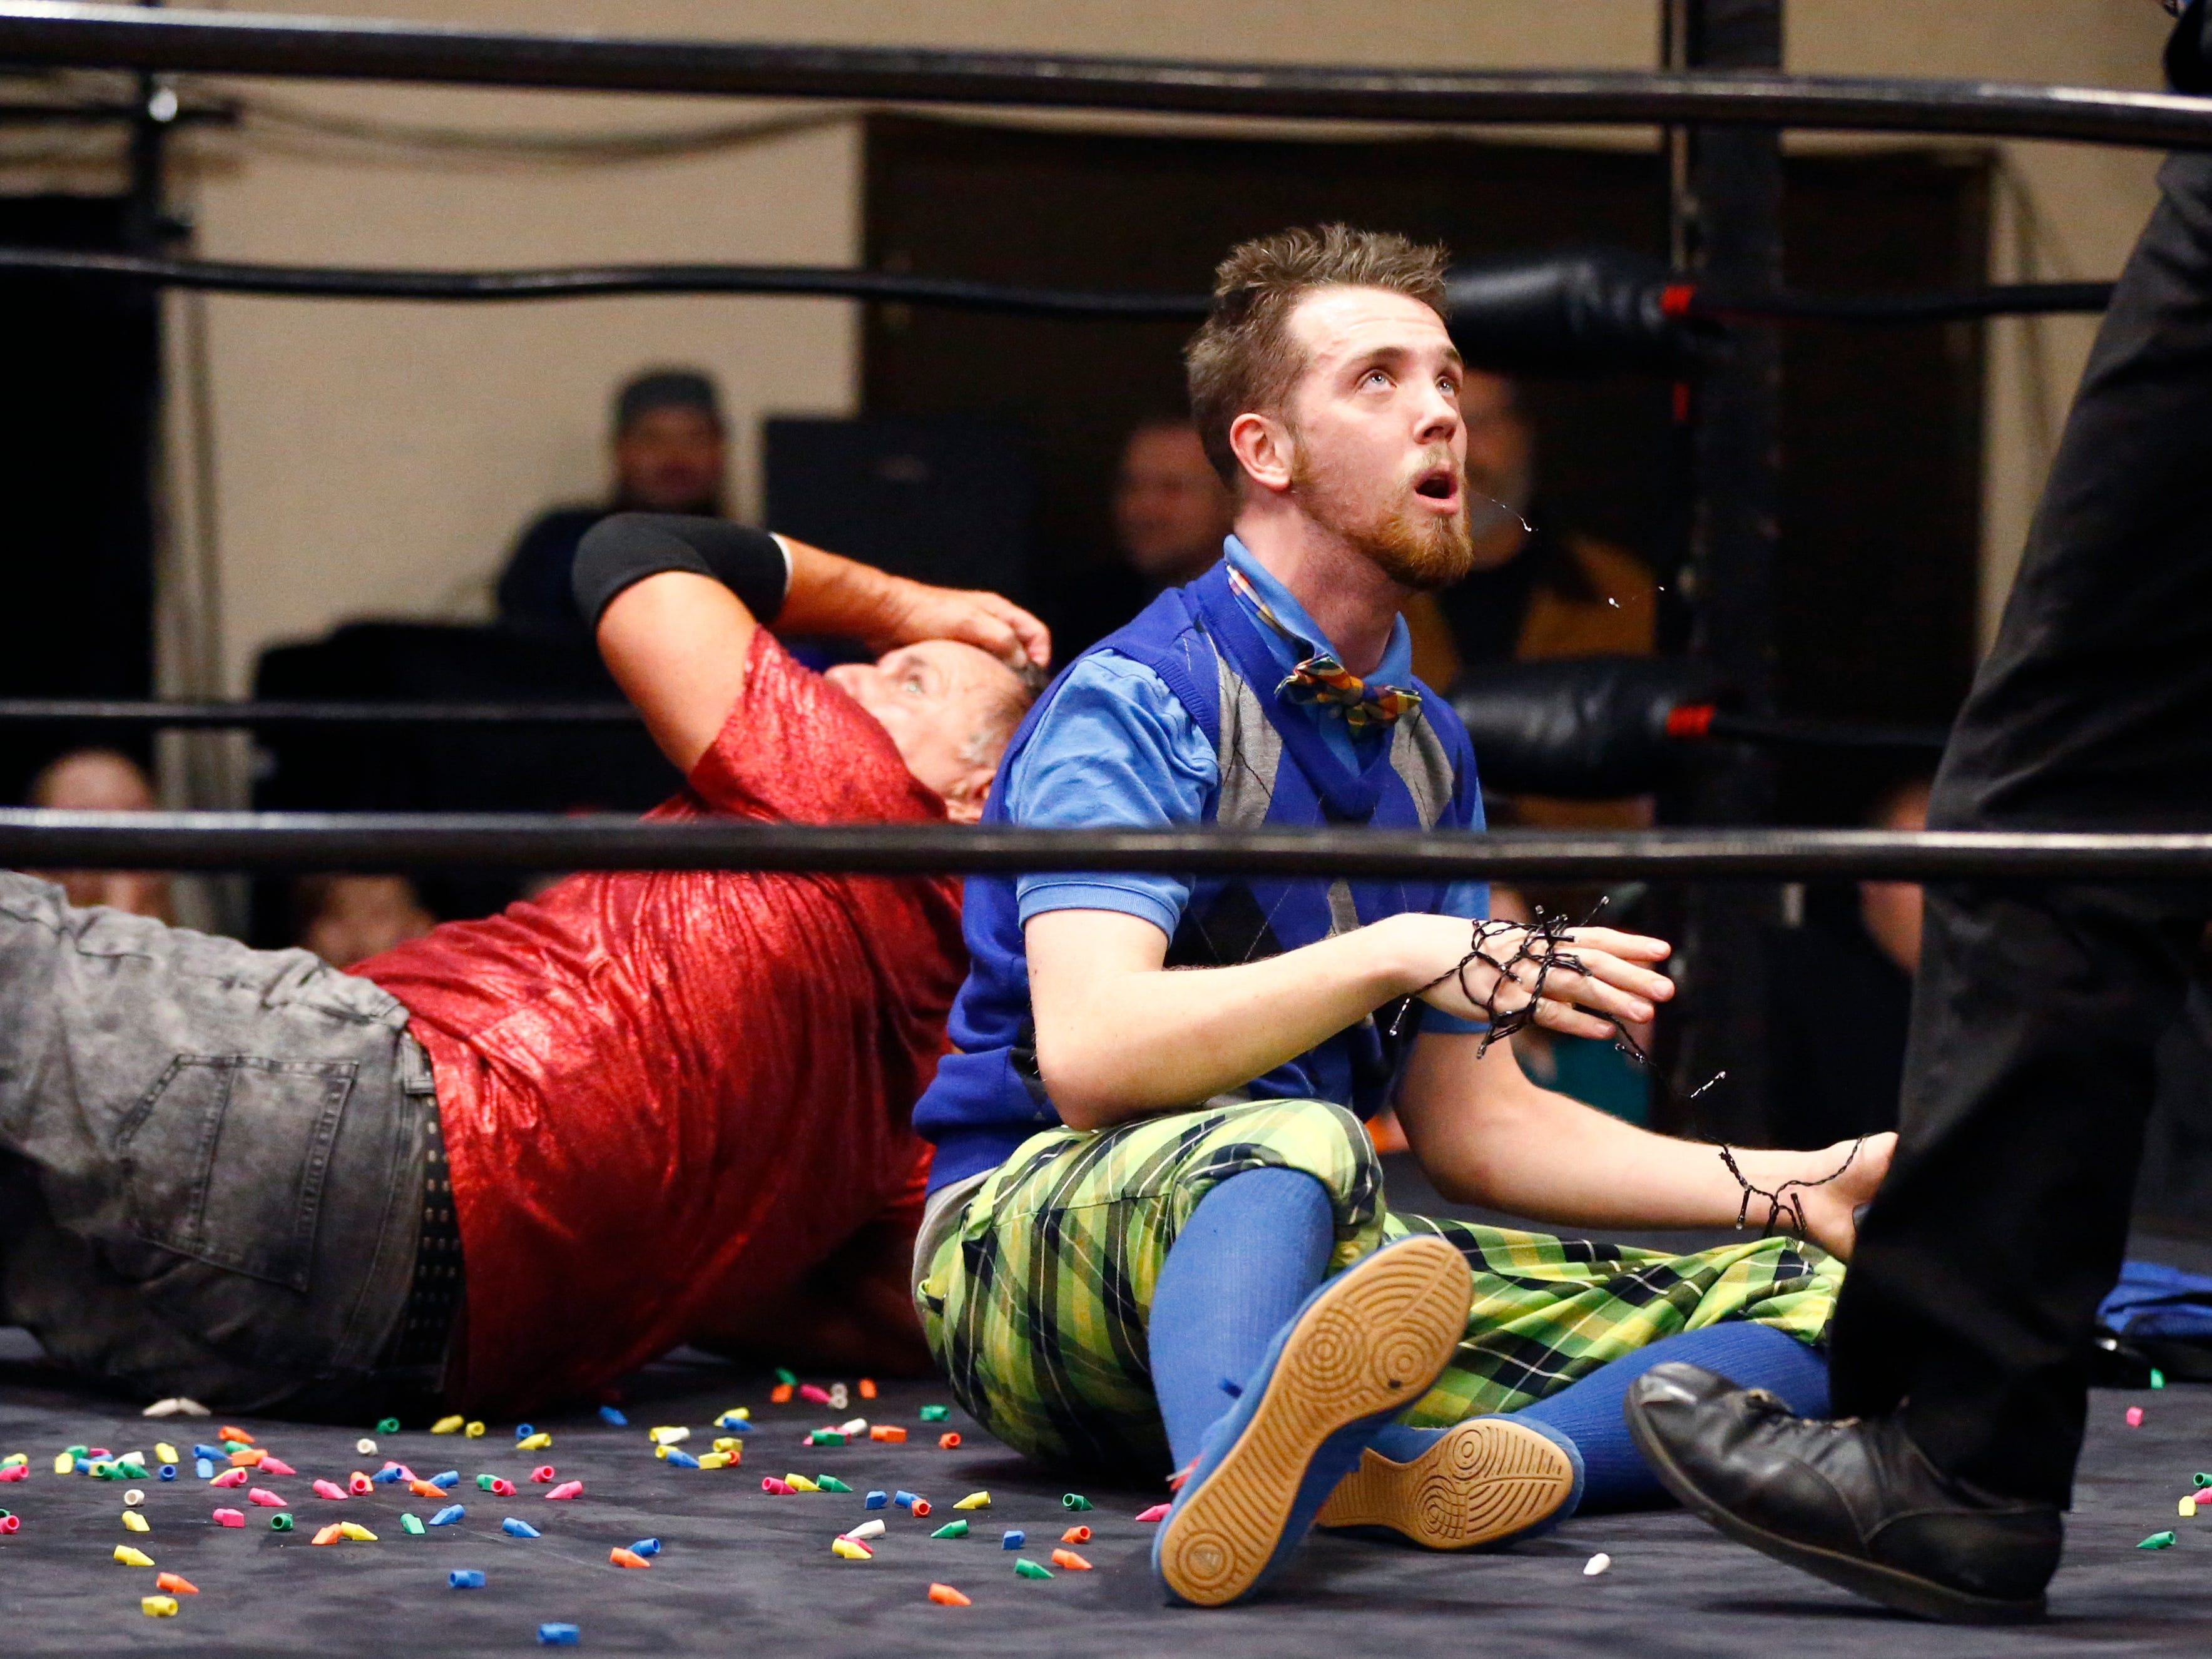 """Lou Zhur listens to the referee's call while battling Angel Armani during the Brew City Wrestling """"Rise To Honor XV- 15 Years of FAN-demonium"""" event at the Waukesha Elks Lodge on Jan. 11 that featured seven matches during the evening."""